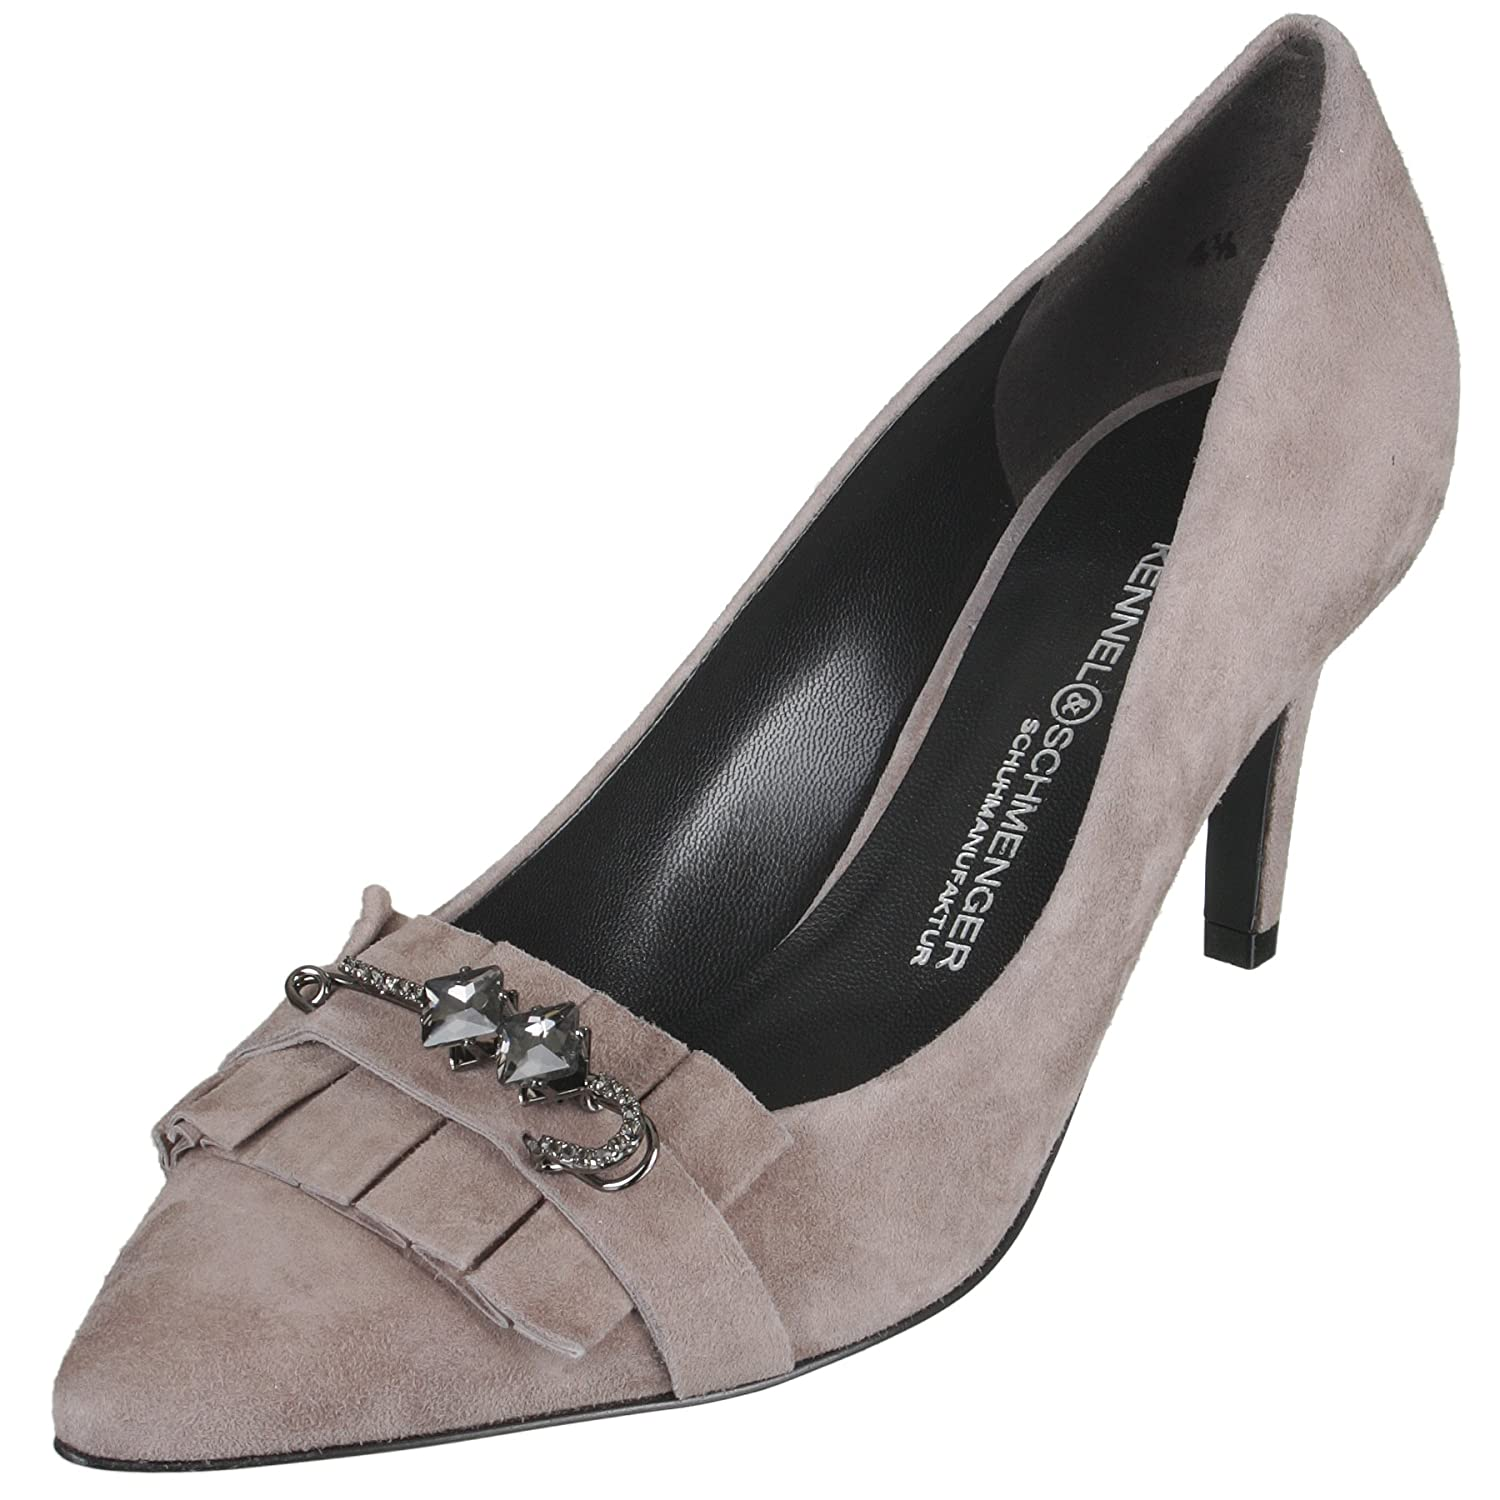 Kennel & Schmenger Pumps Liz in Ombra ks 61 70840 392